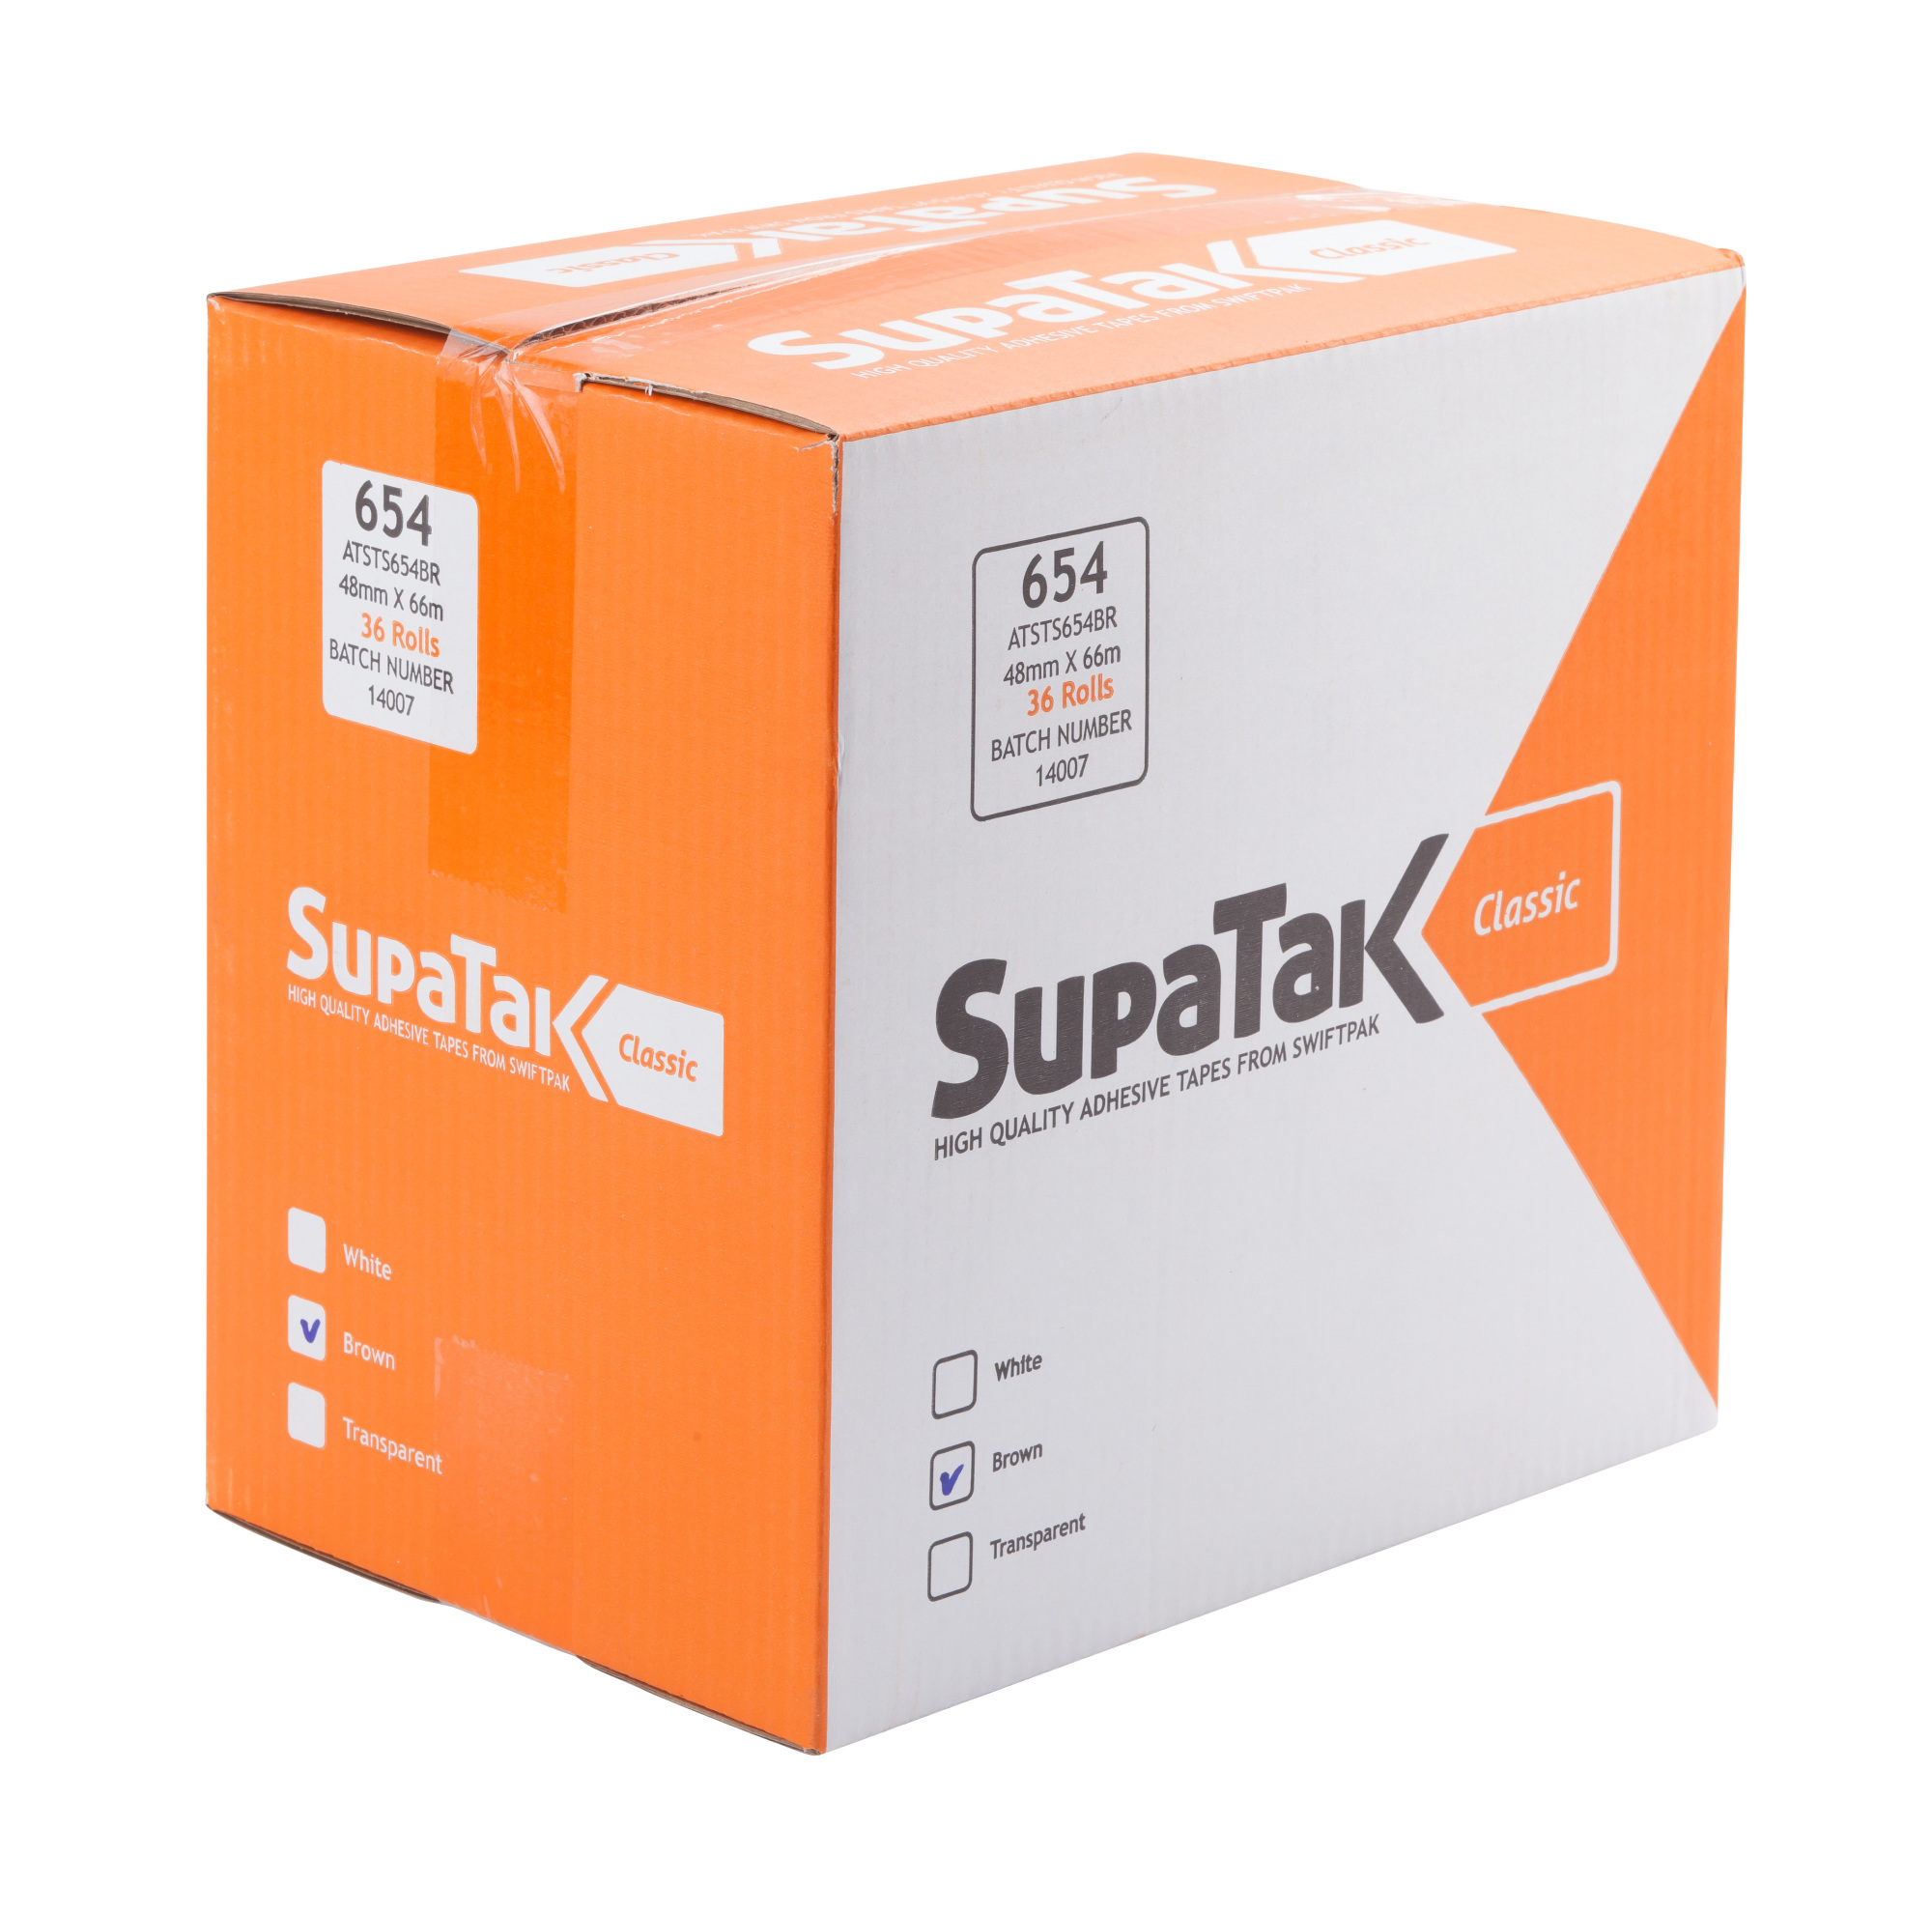 SUPATAK Classic 48mm x 66m Clear Tape